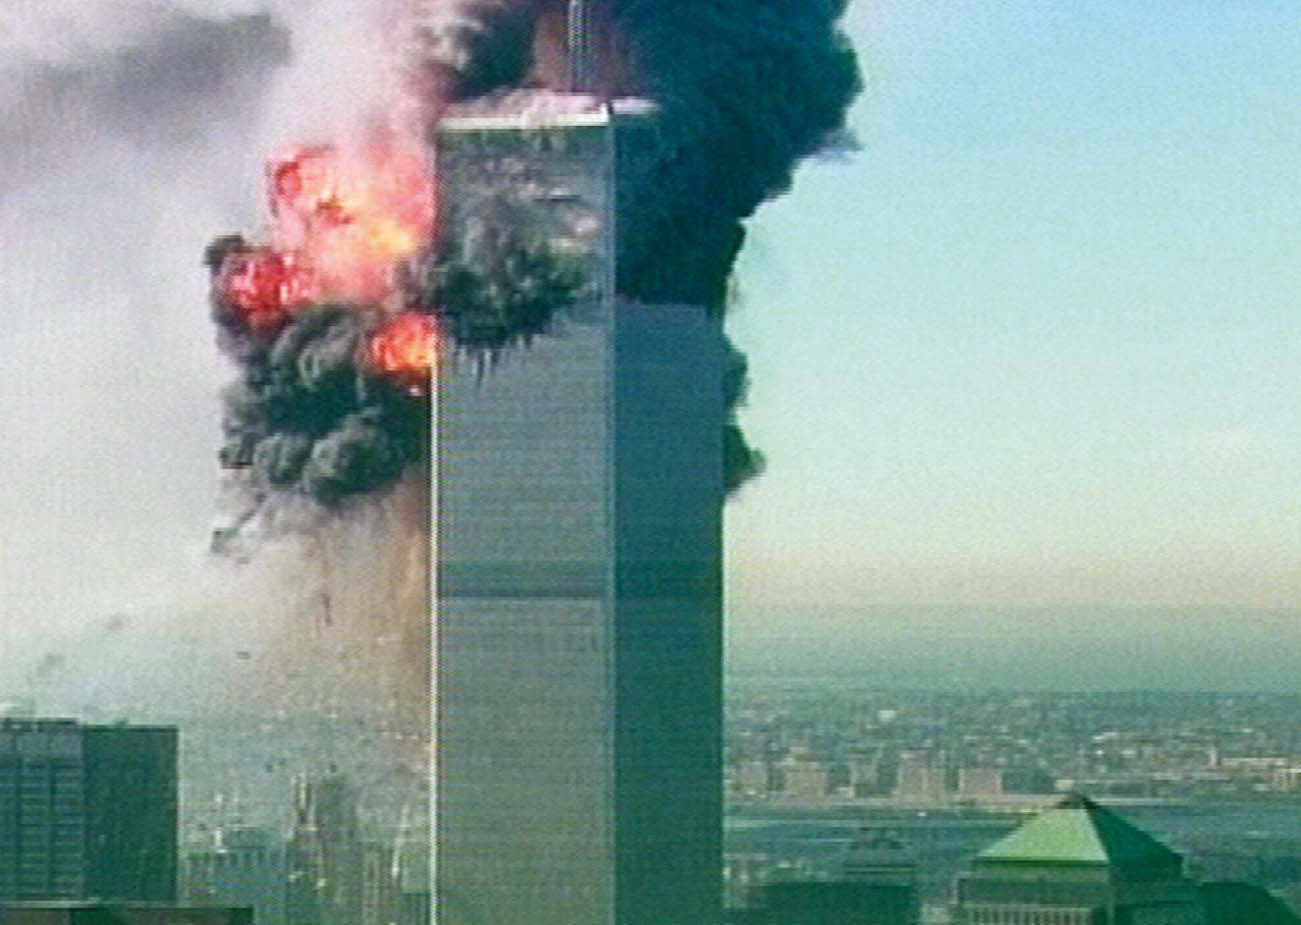 The World Trade Center in New York on Sept. 11, 2001.